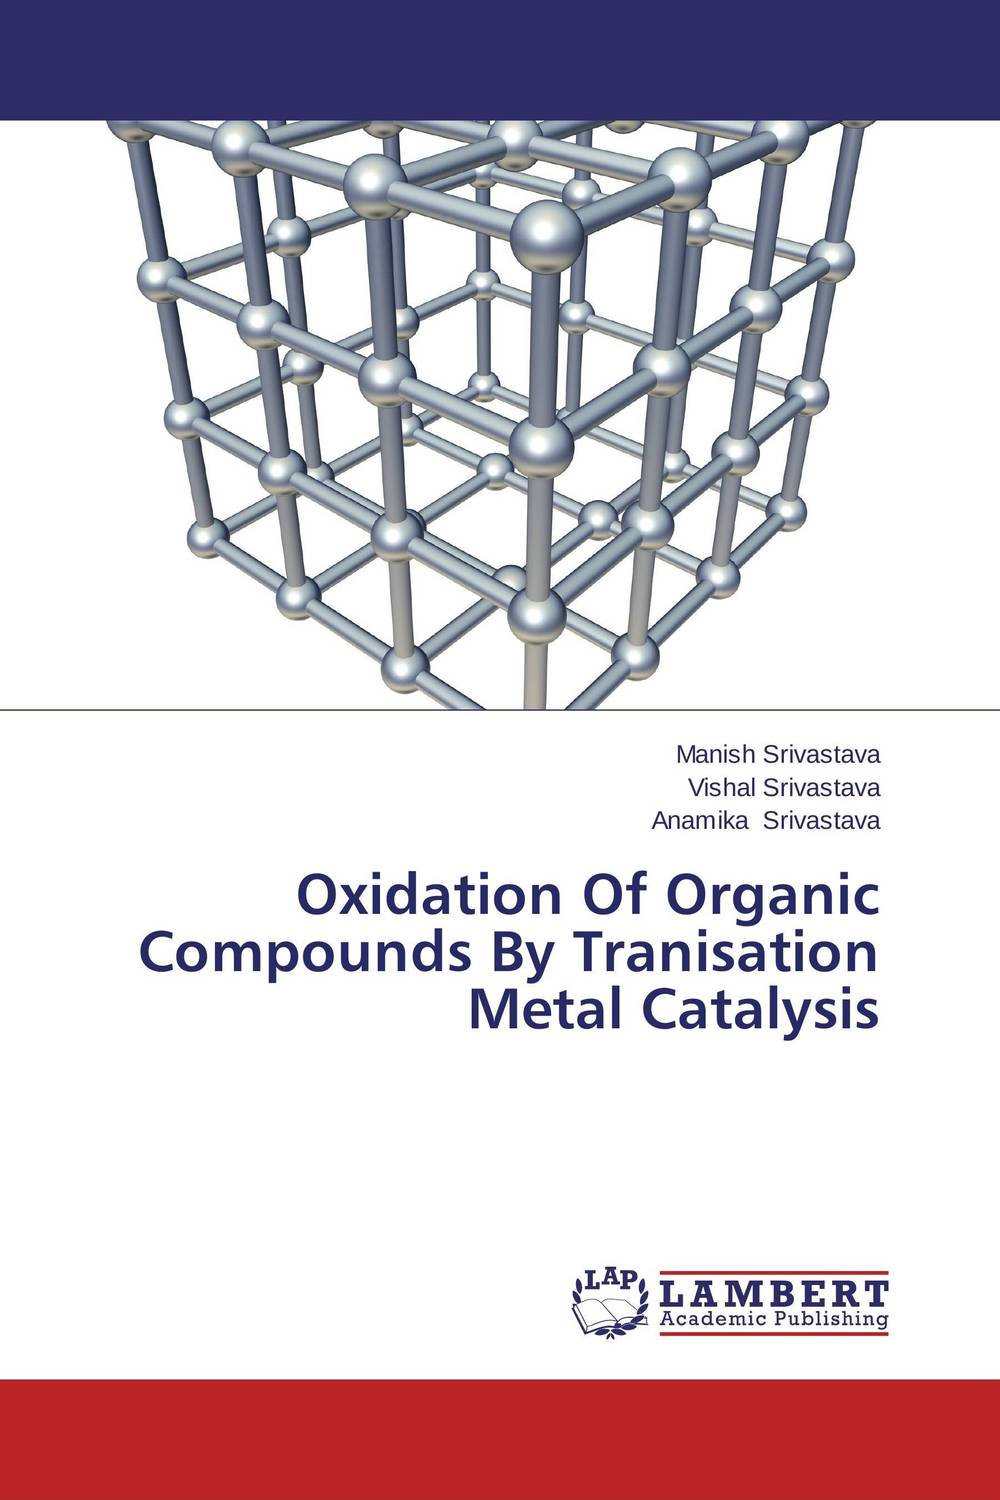 Oxidation Of Organic Compounds By Tranisation Metal Catalysis evaluation of aqueous solubility of hydroxamic acids by pls modelling